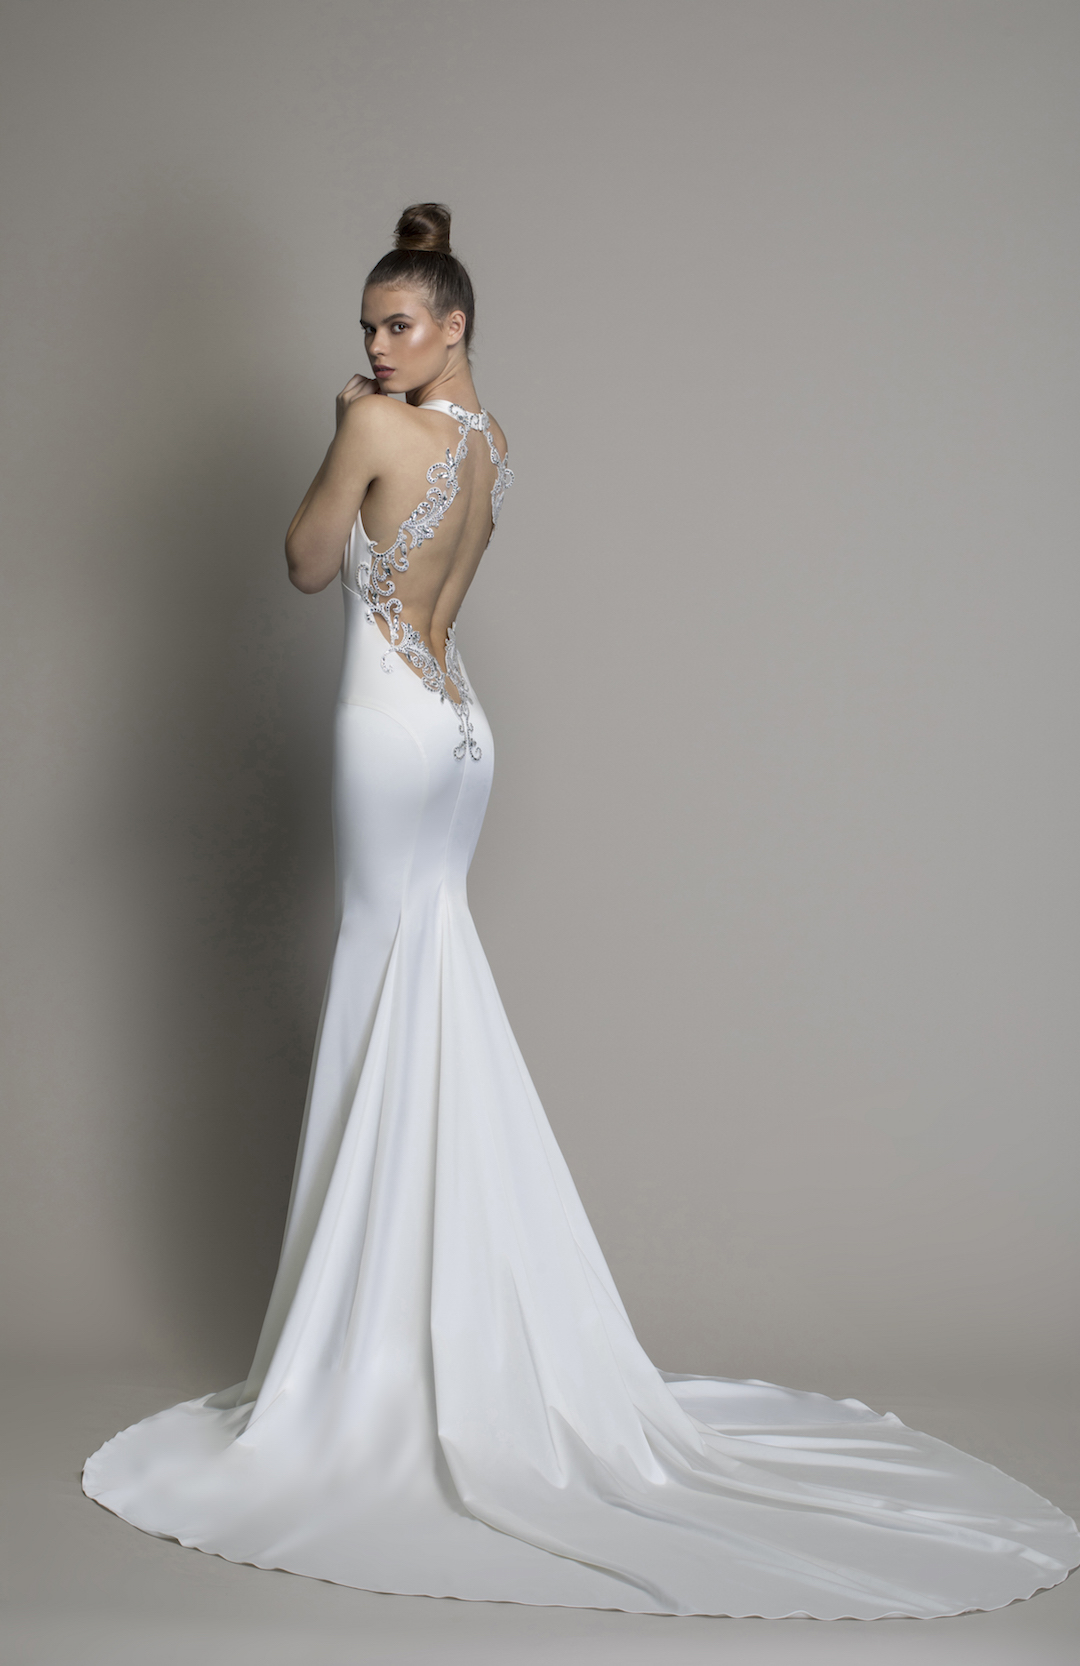 Pnina Tornai's new LOVE 2020 Collection is out! This is style 14764